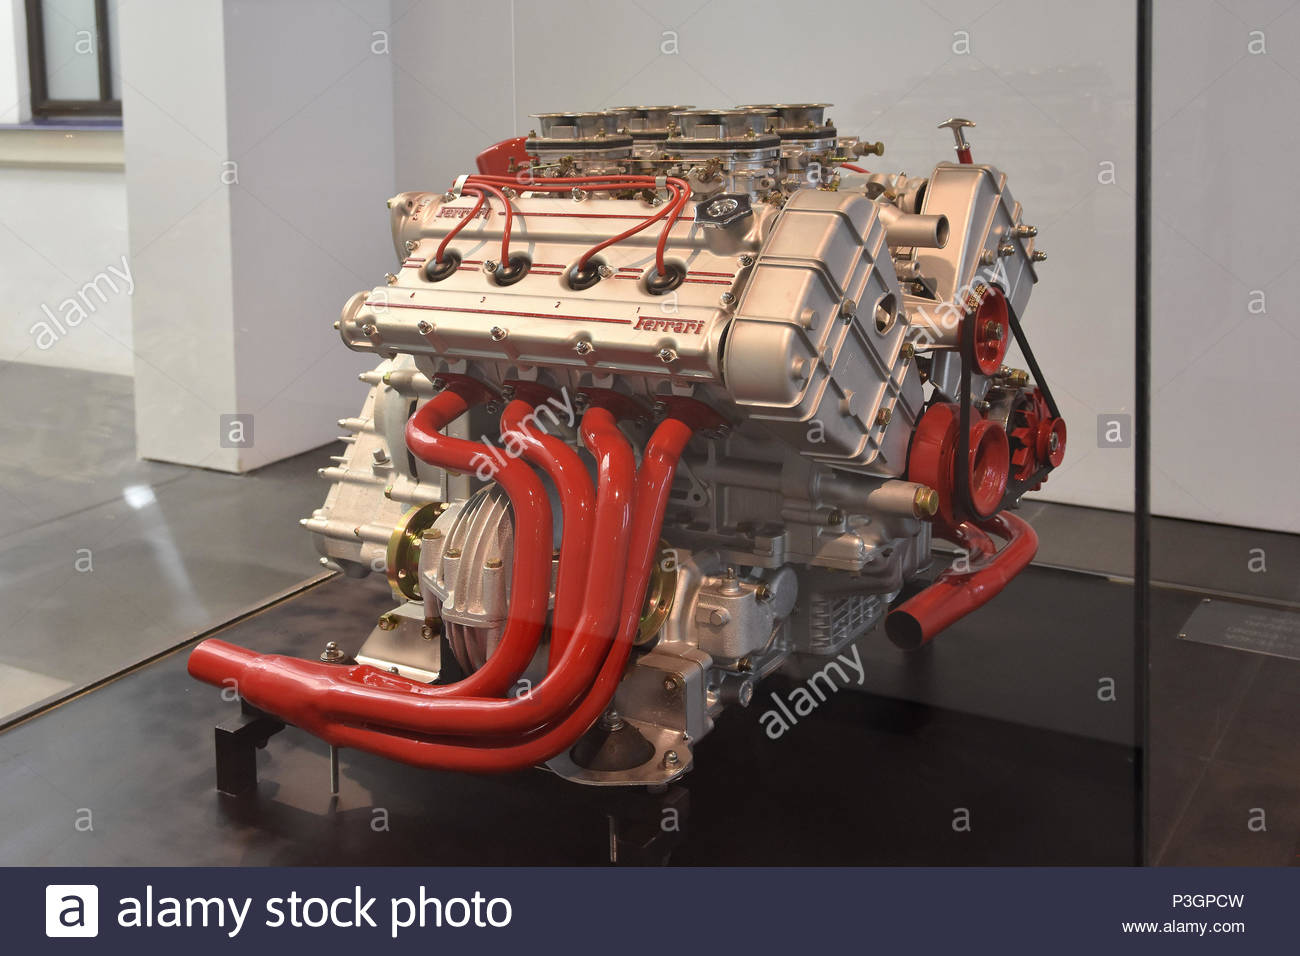 4 cylinder Ferrari engine displayed at Museum Of Automobiles (Museo Automovilístico) in Malaga Spain Europe. - Stock Image